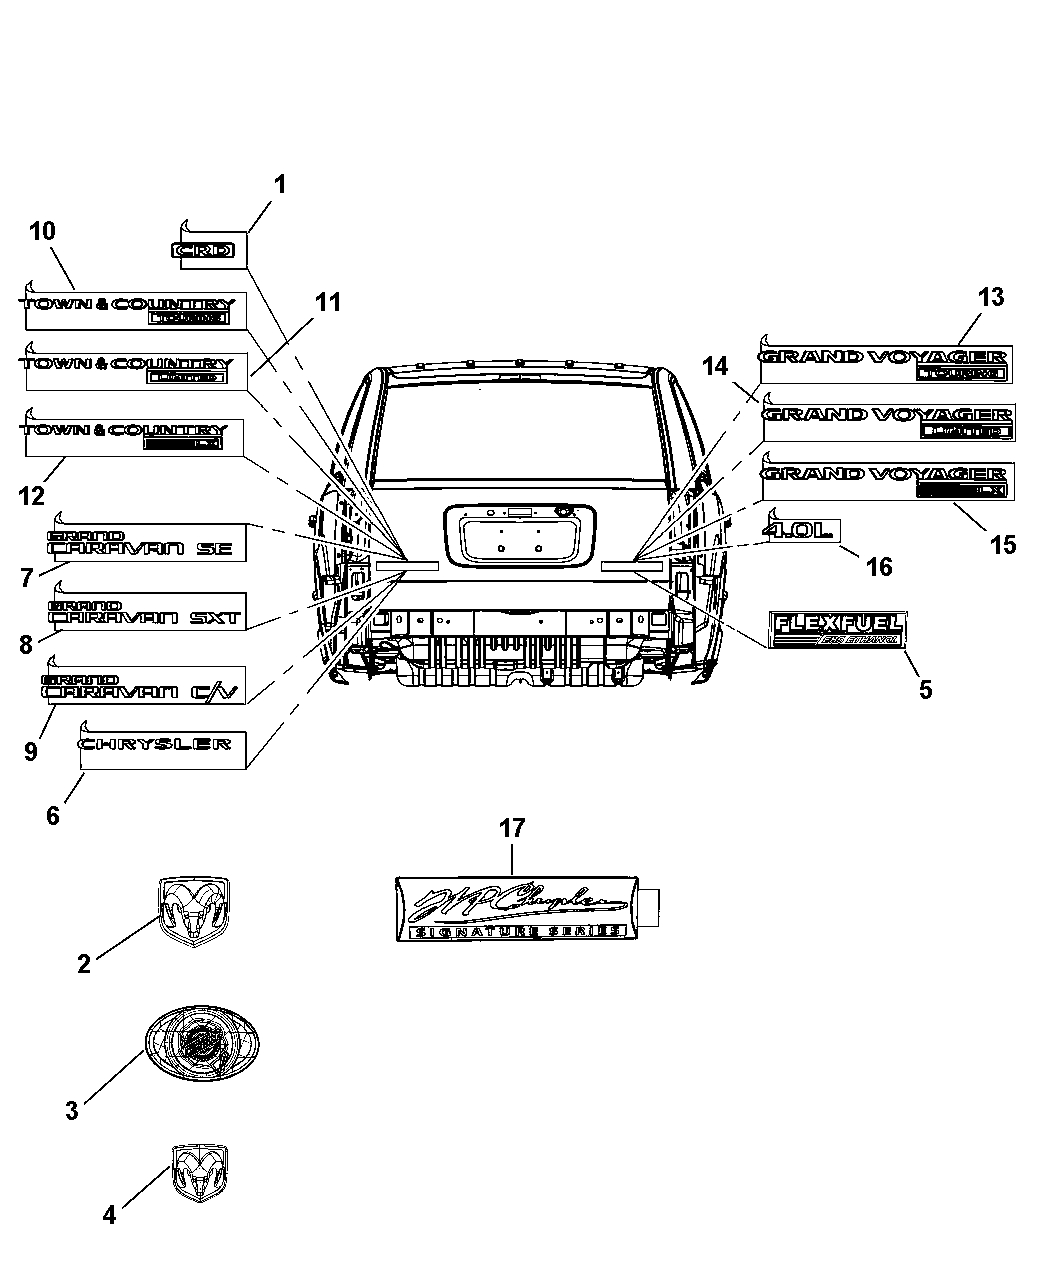 2008 town and country wiring diagram